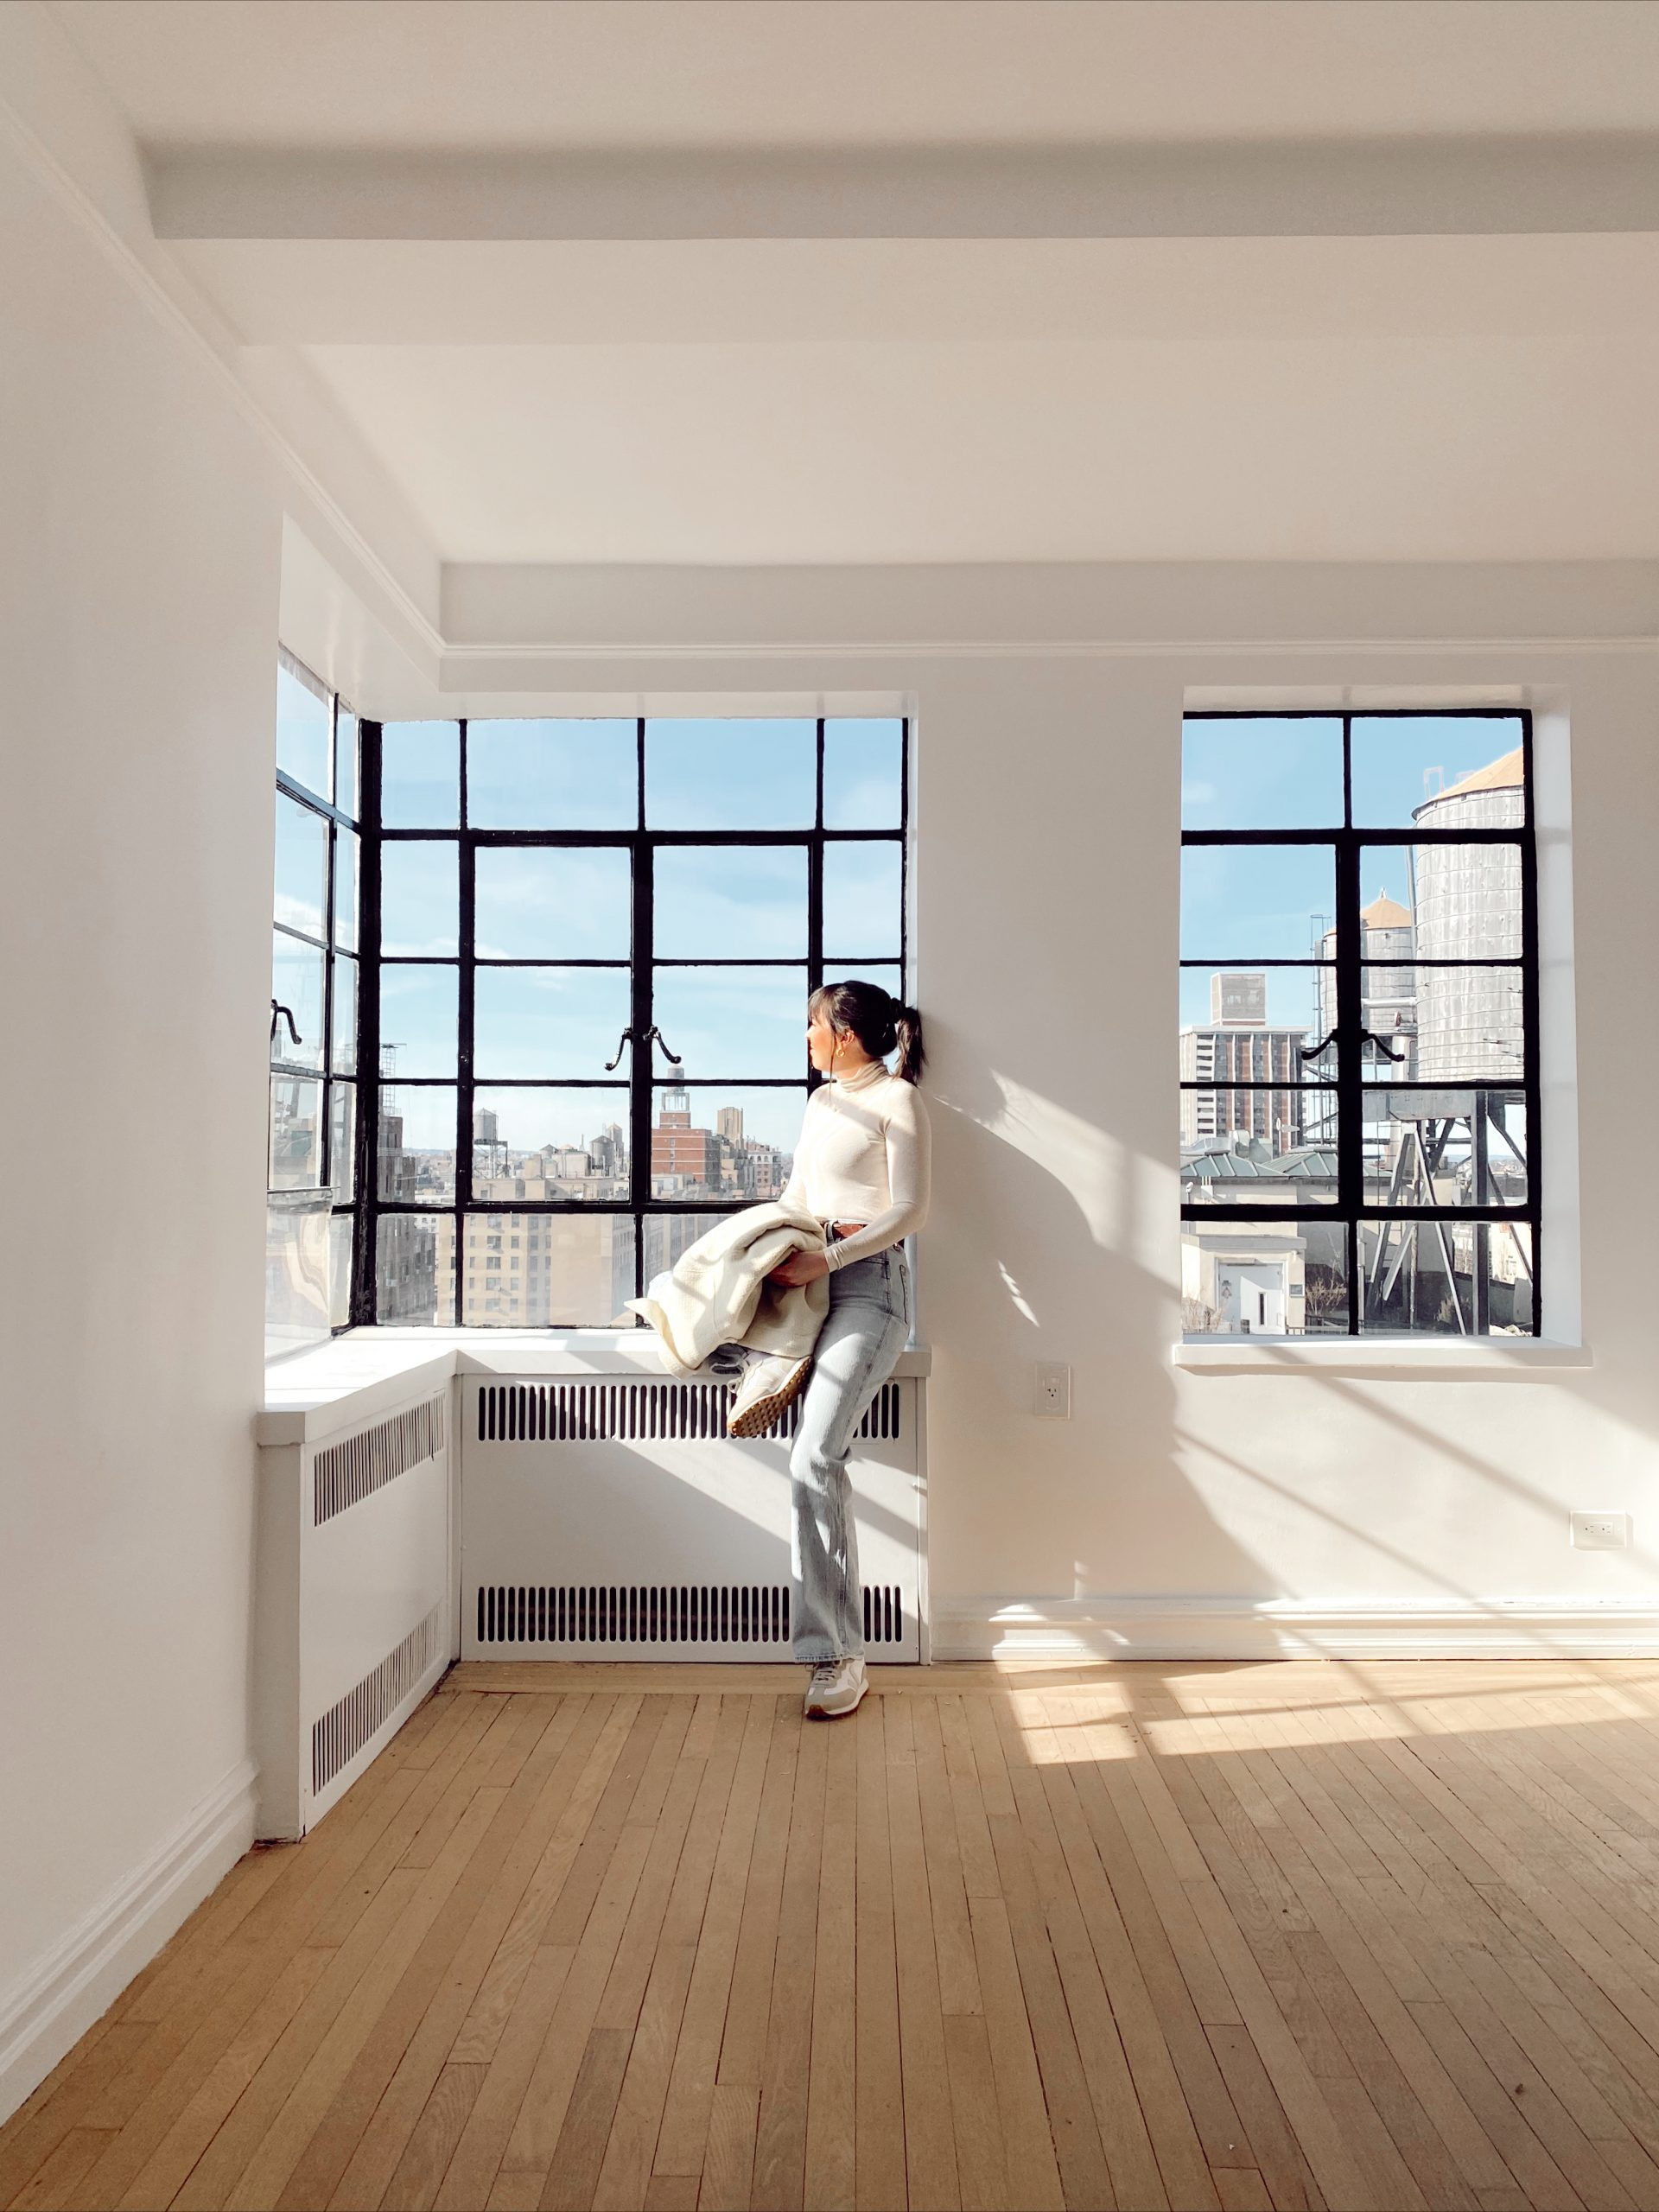 Finding an Apt in NYC Q&A